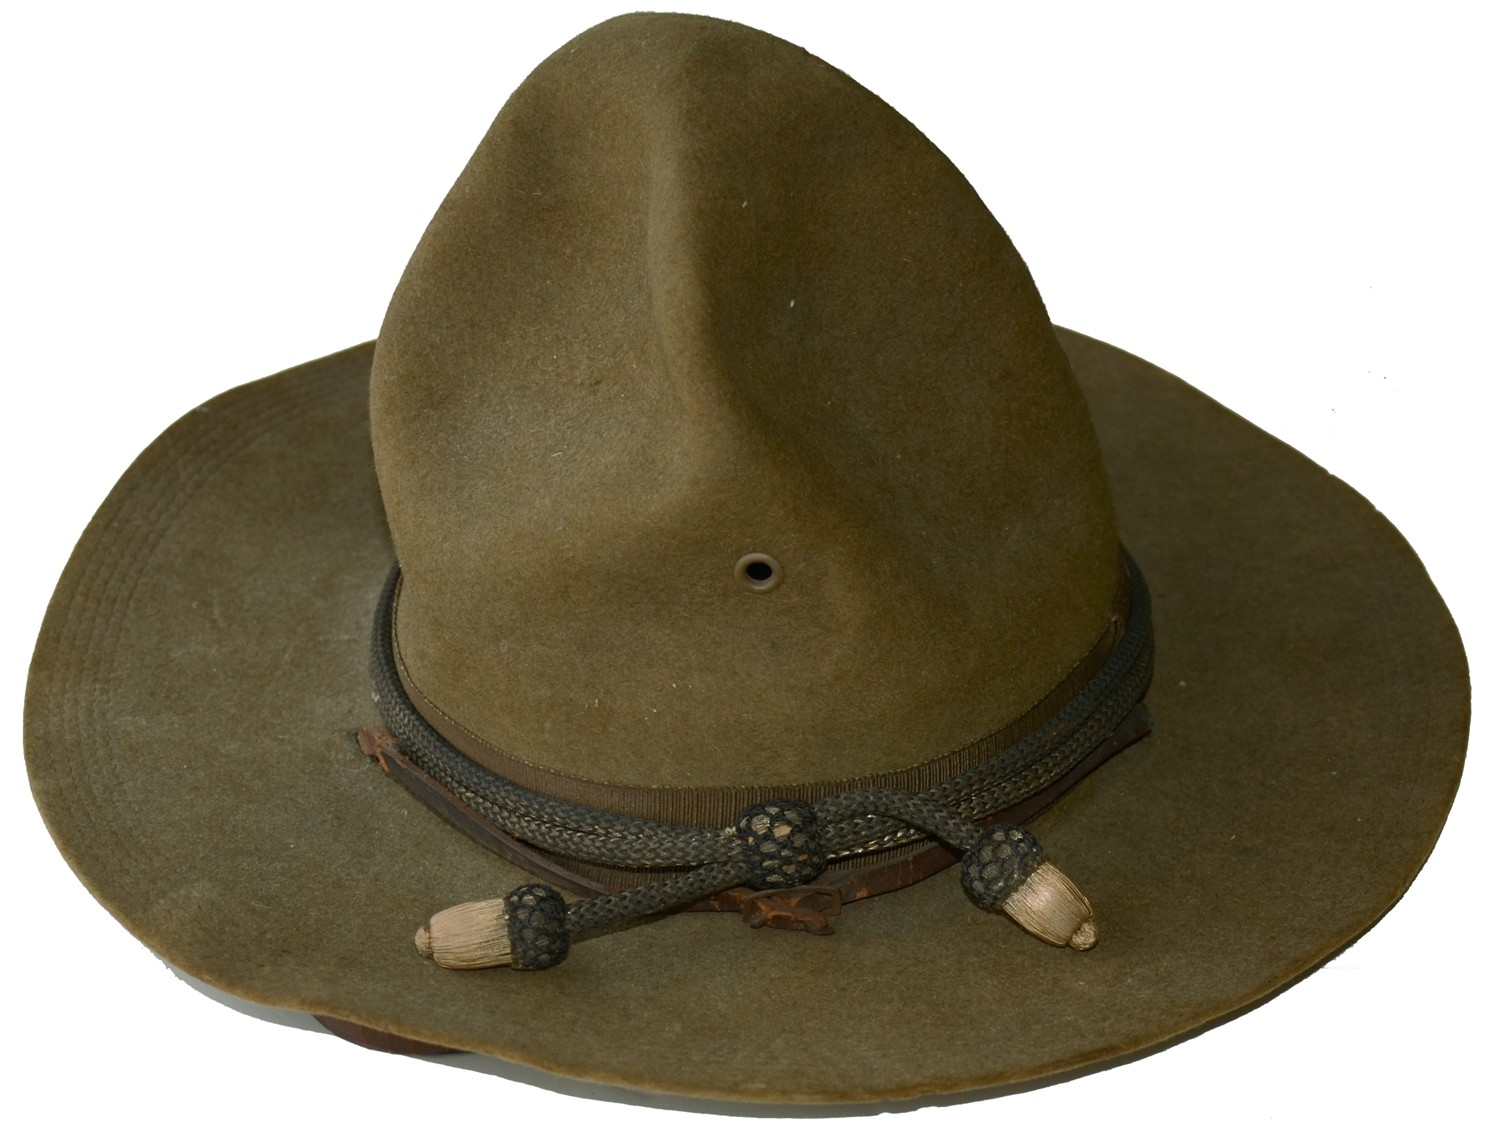 COMPLETE WORLD WAR ONE OFFICER'S CAMPAIGN HAT